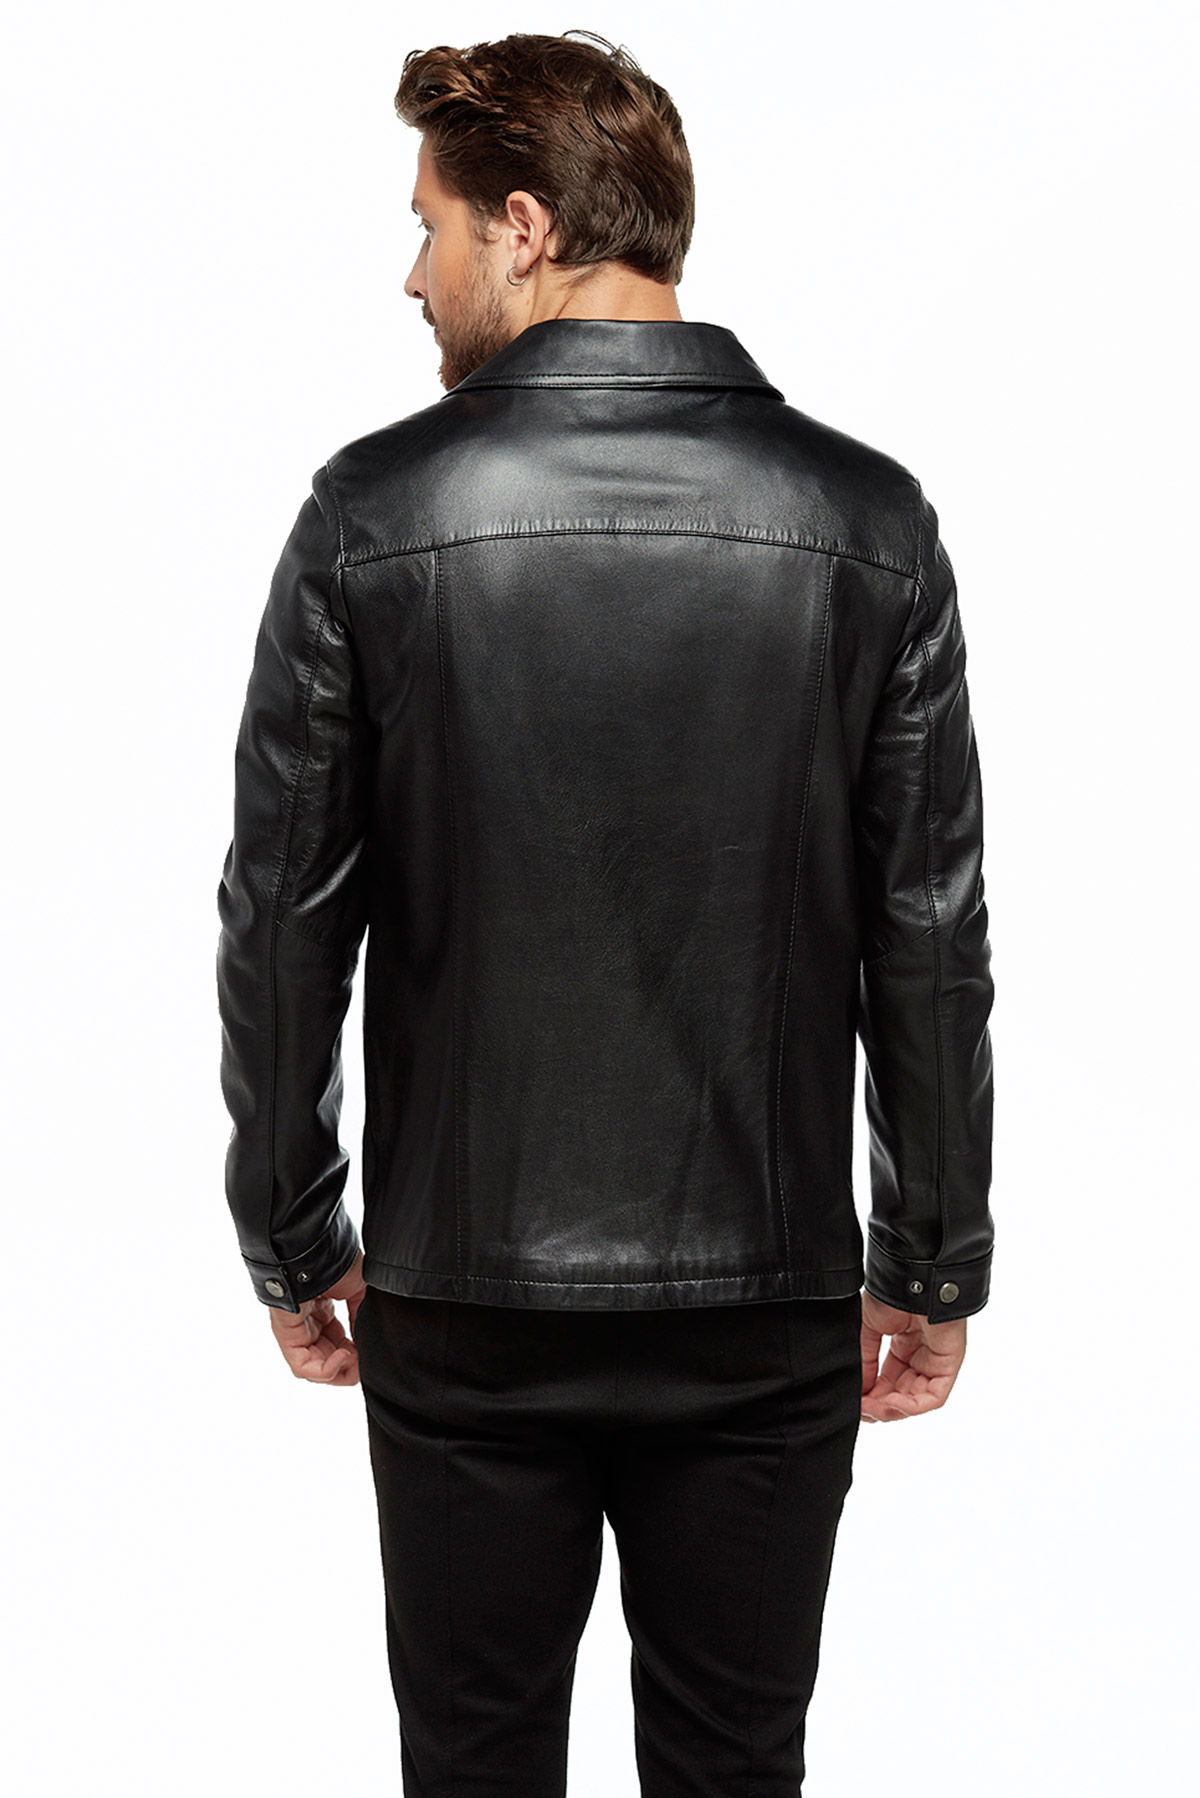 mens leather jackets made in usa